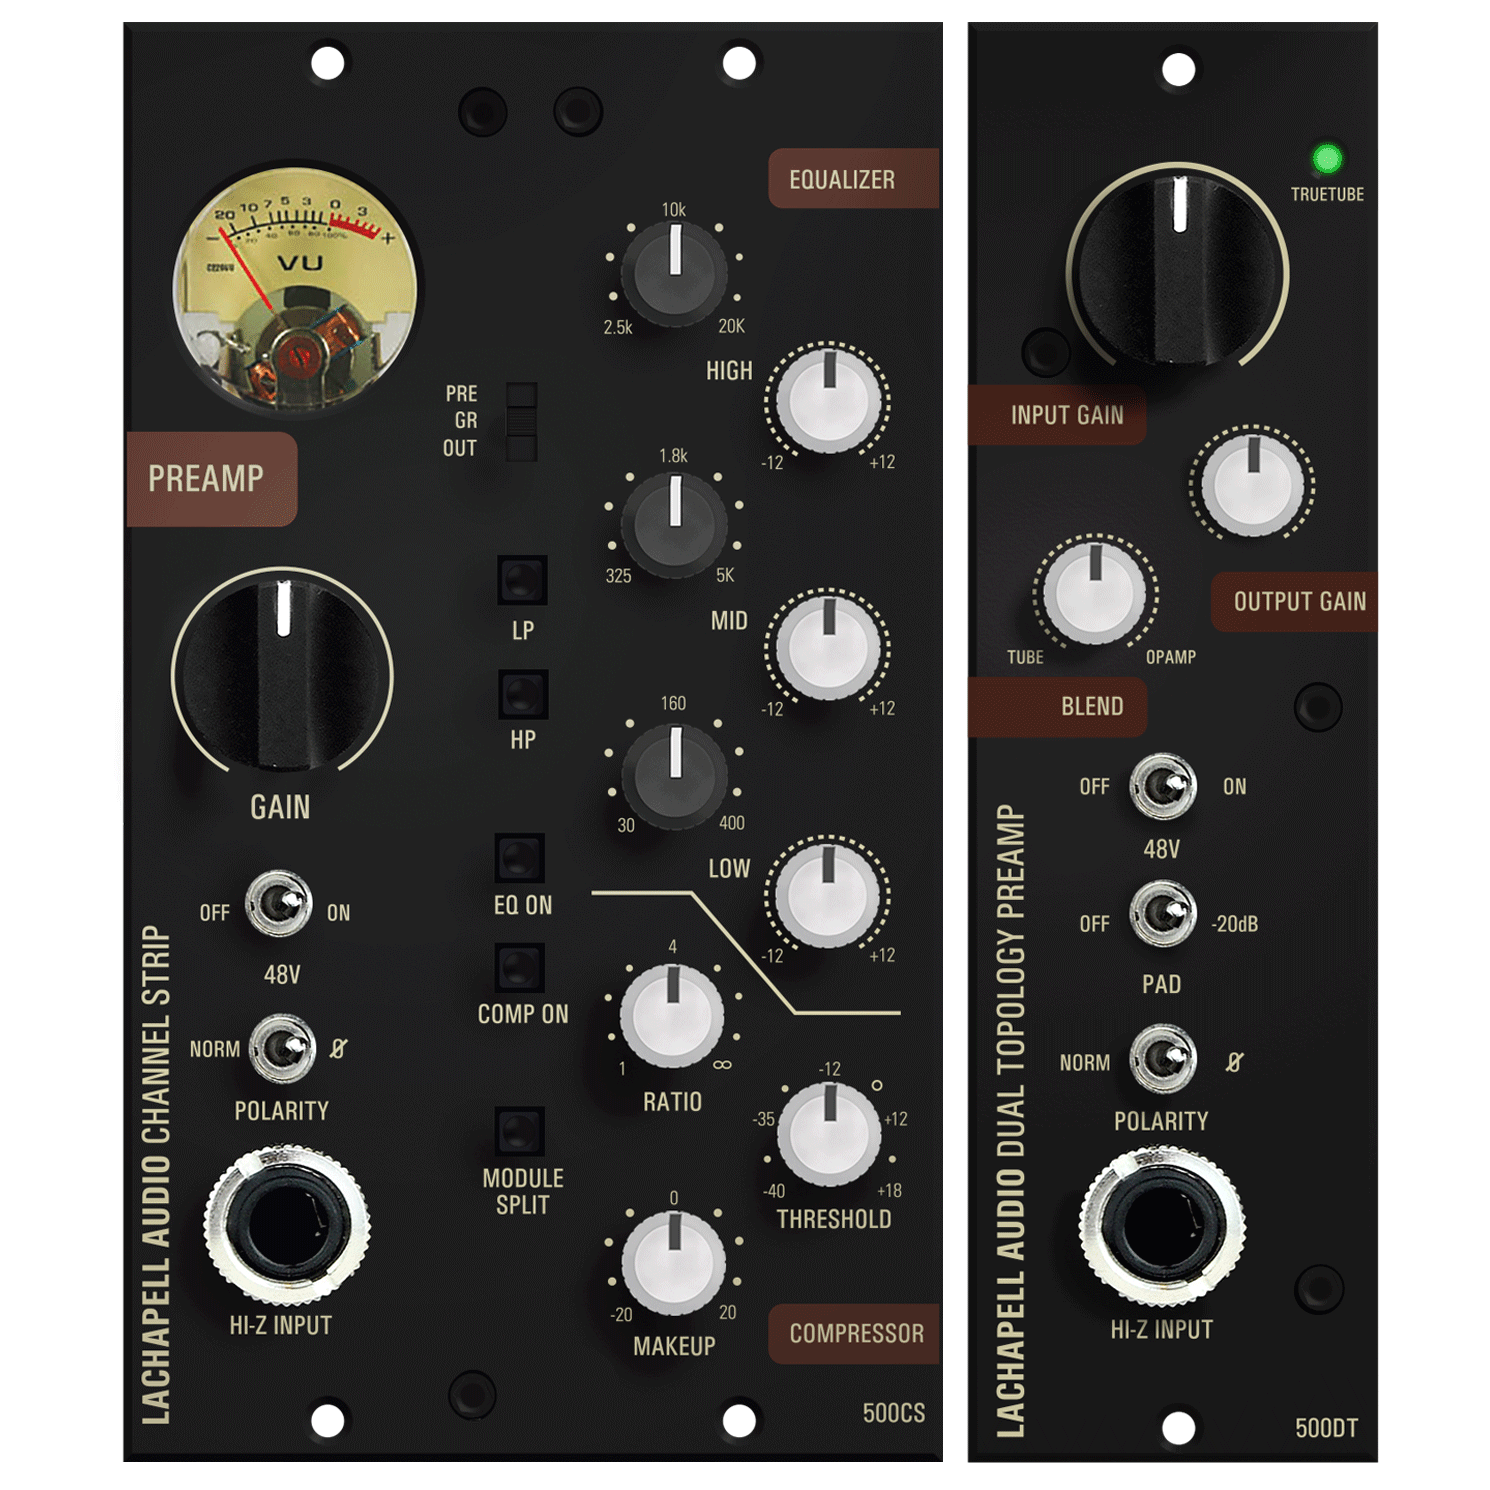 NAMM Ready Products The LaChapell Audio Dual Topology Mic Preamp And The Channel Strip For The 500 Series